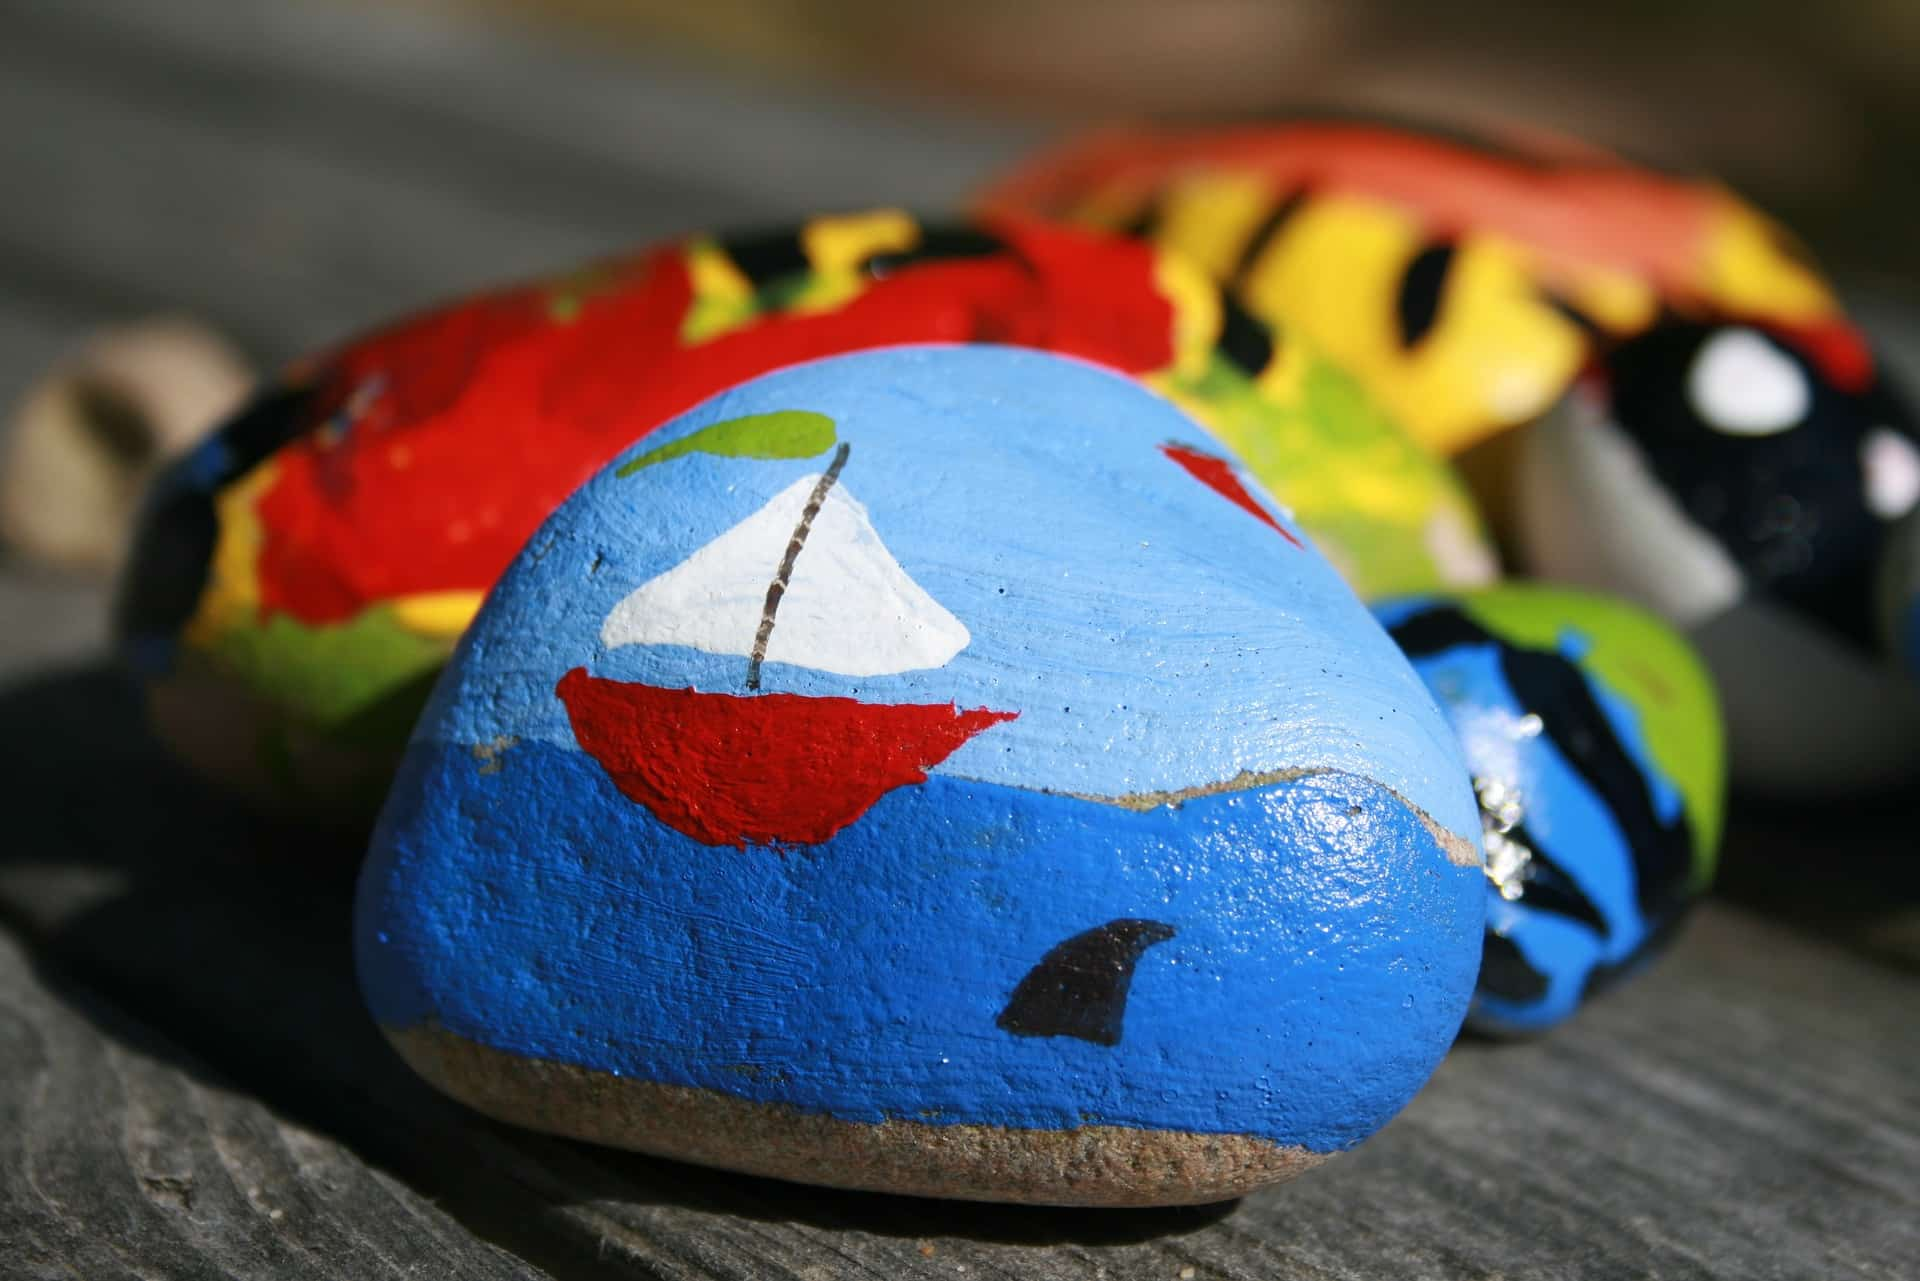 Rock painted with blue sky and ocean and red and white sailboat